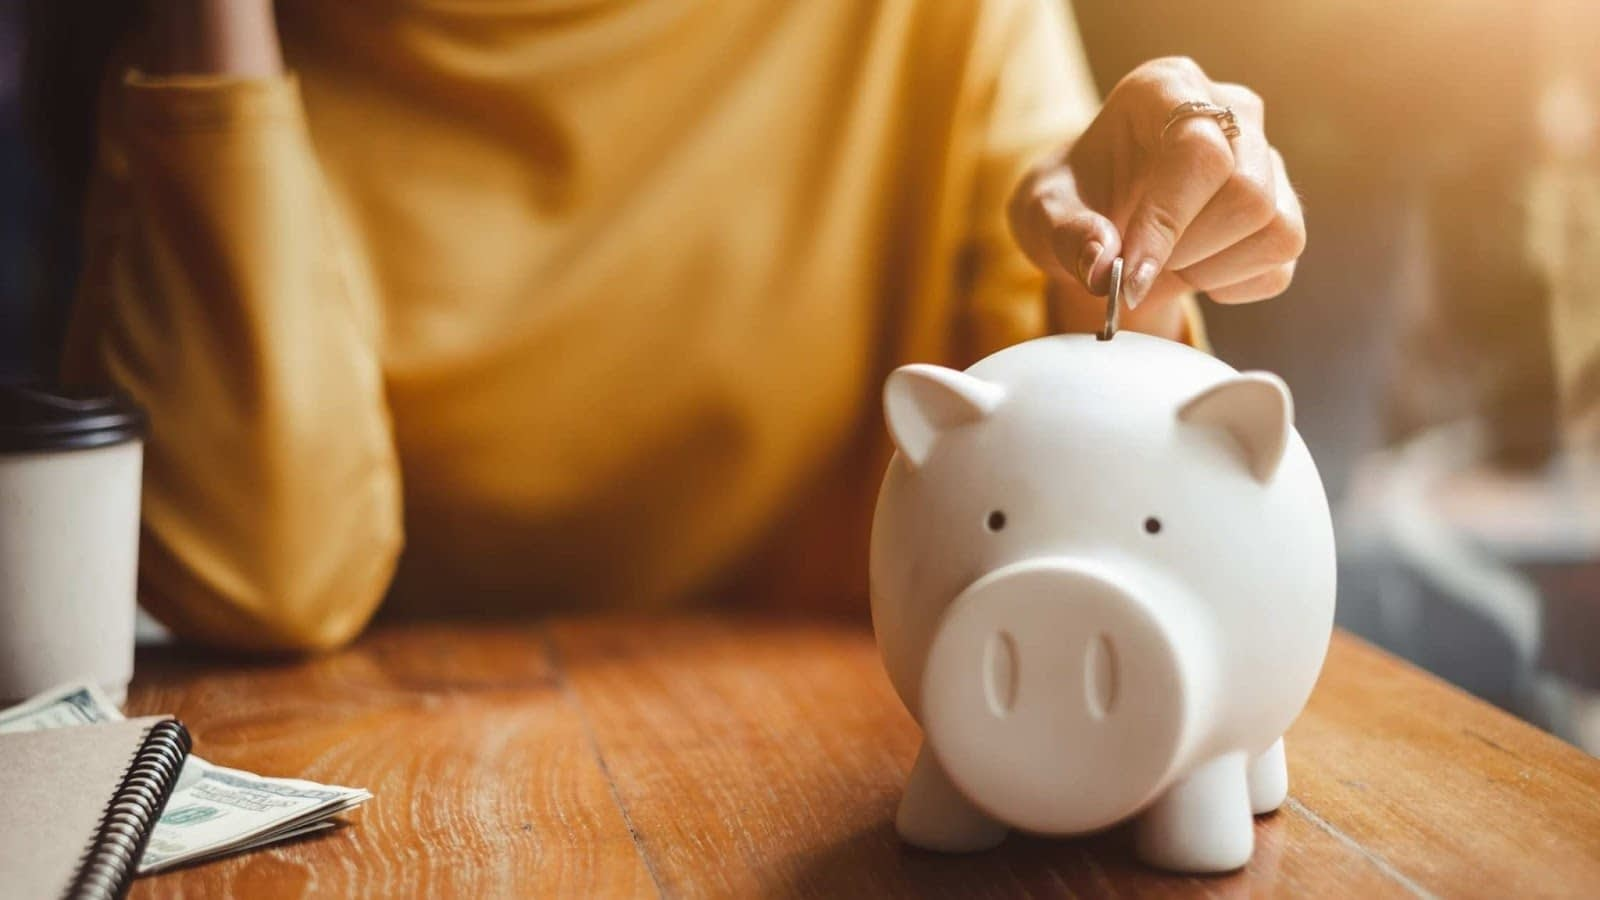 Women in a yellow top dropping a coin into a piggy bank for savings